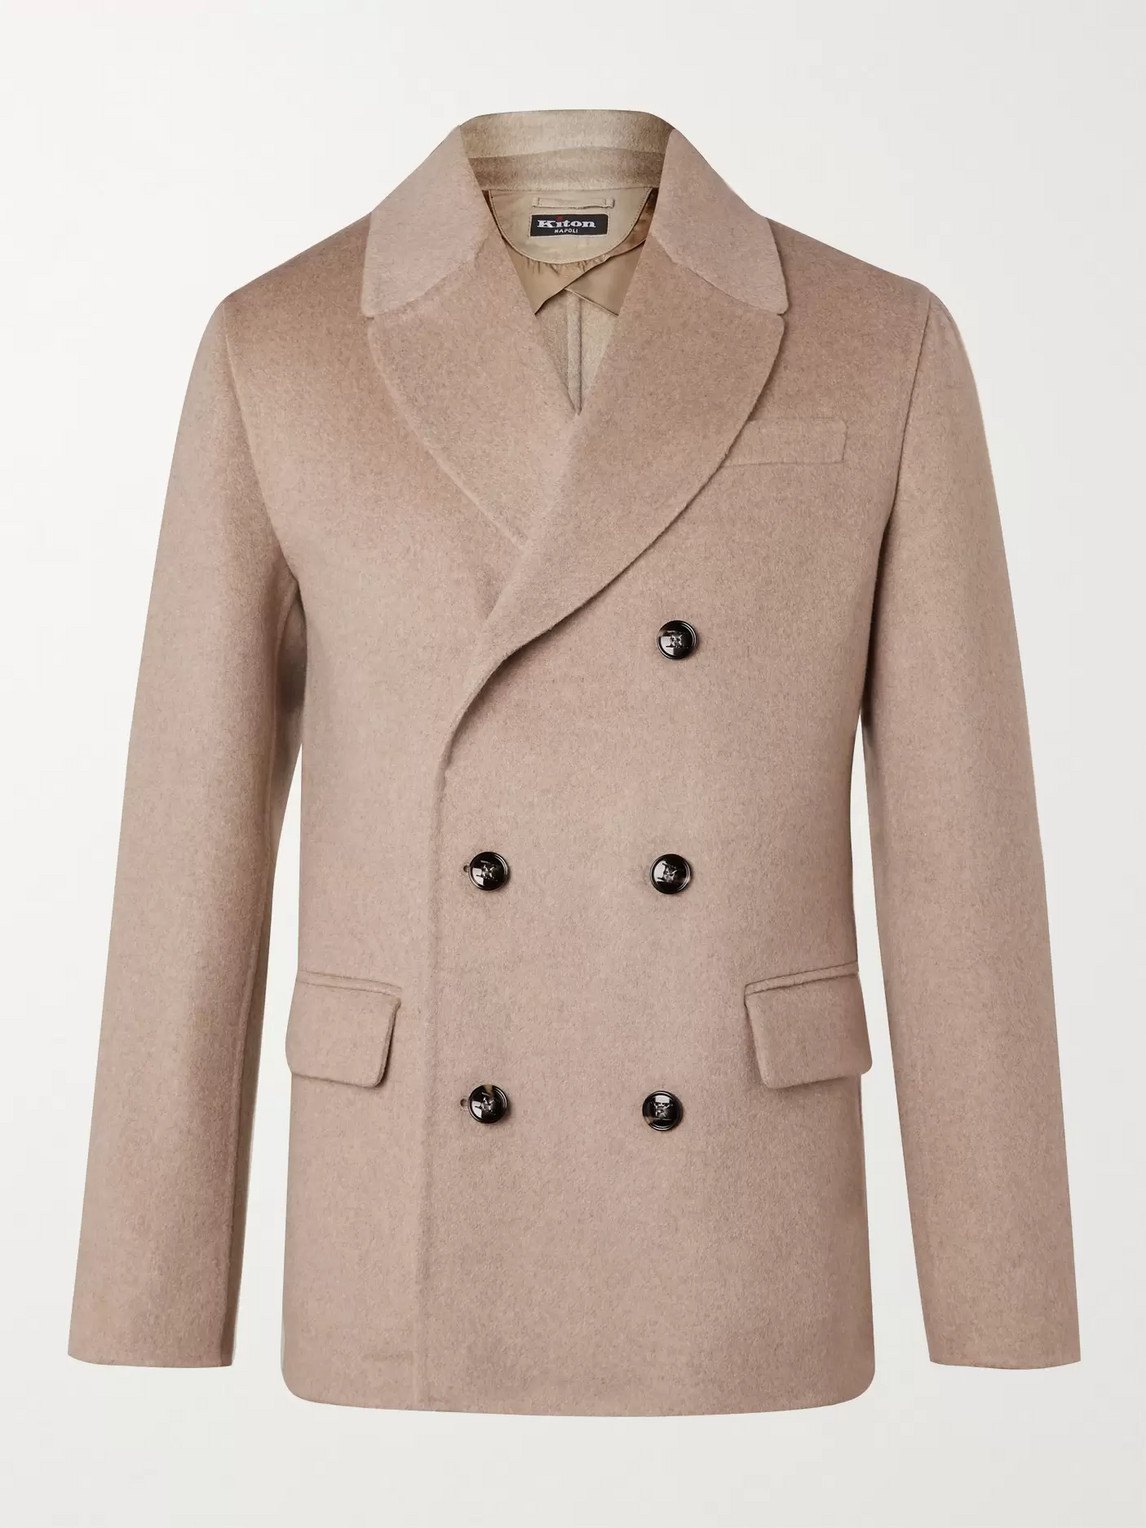 Kiton Double-breasted Cashmere Peacoat In Neutrals